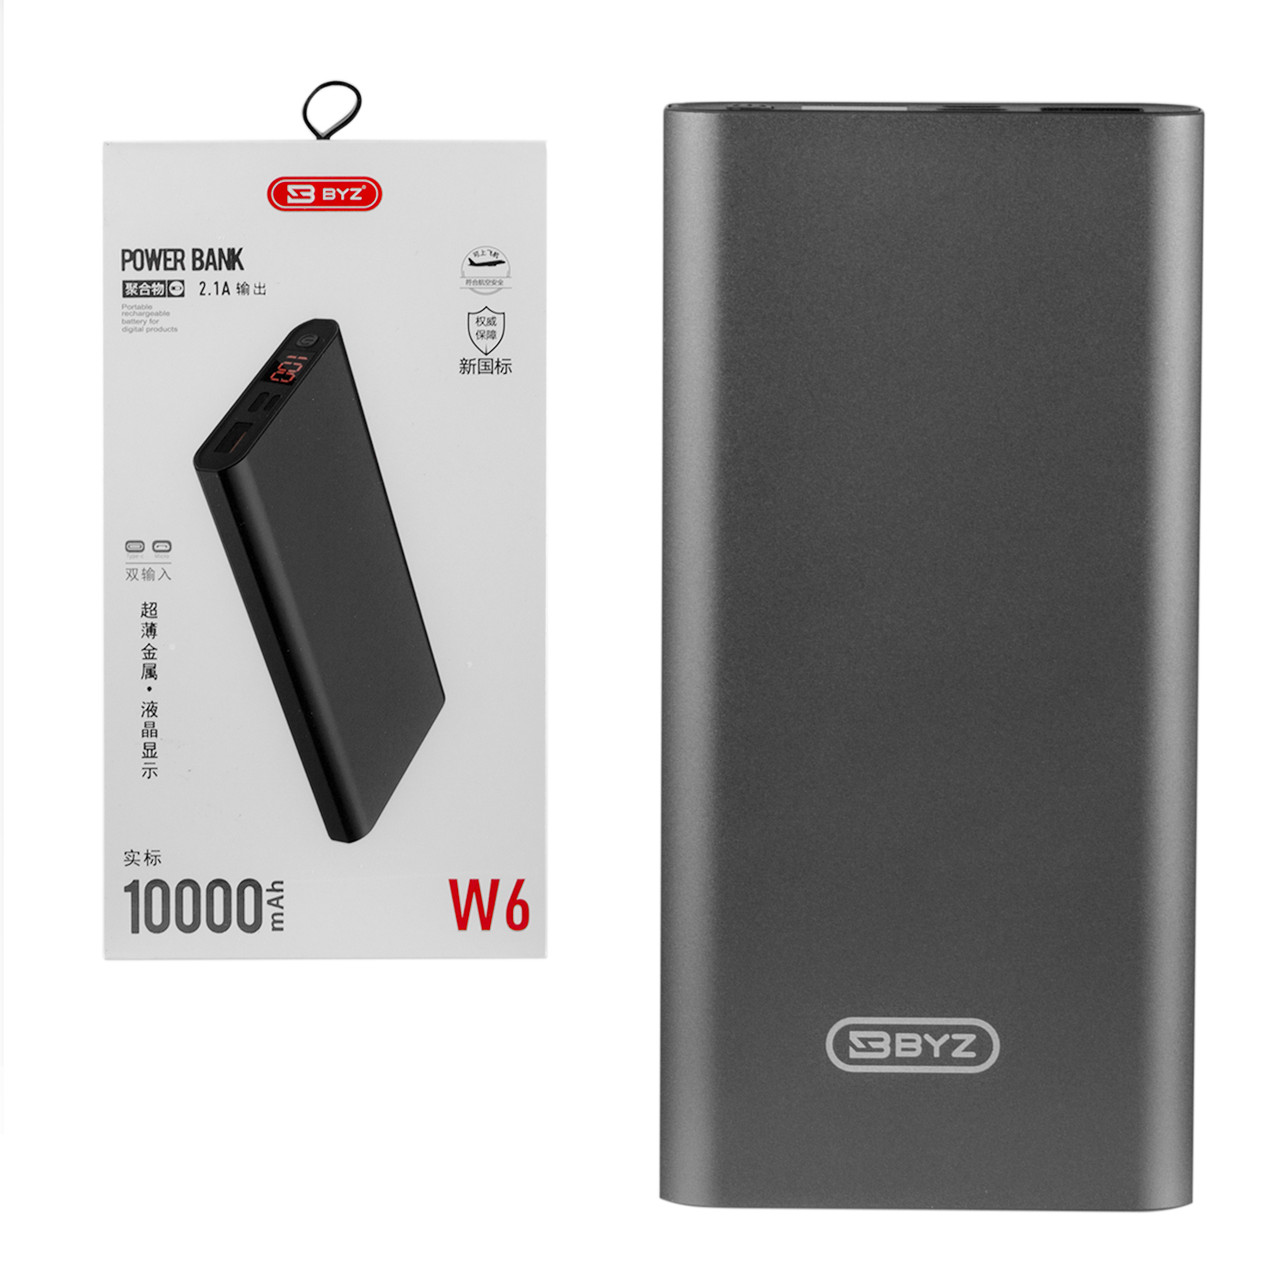 Power bank BYZ W6 10000mAh 2XUSB, Gray